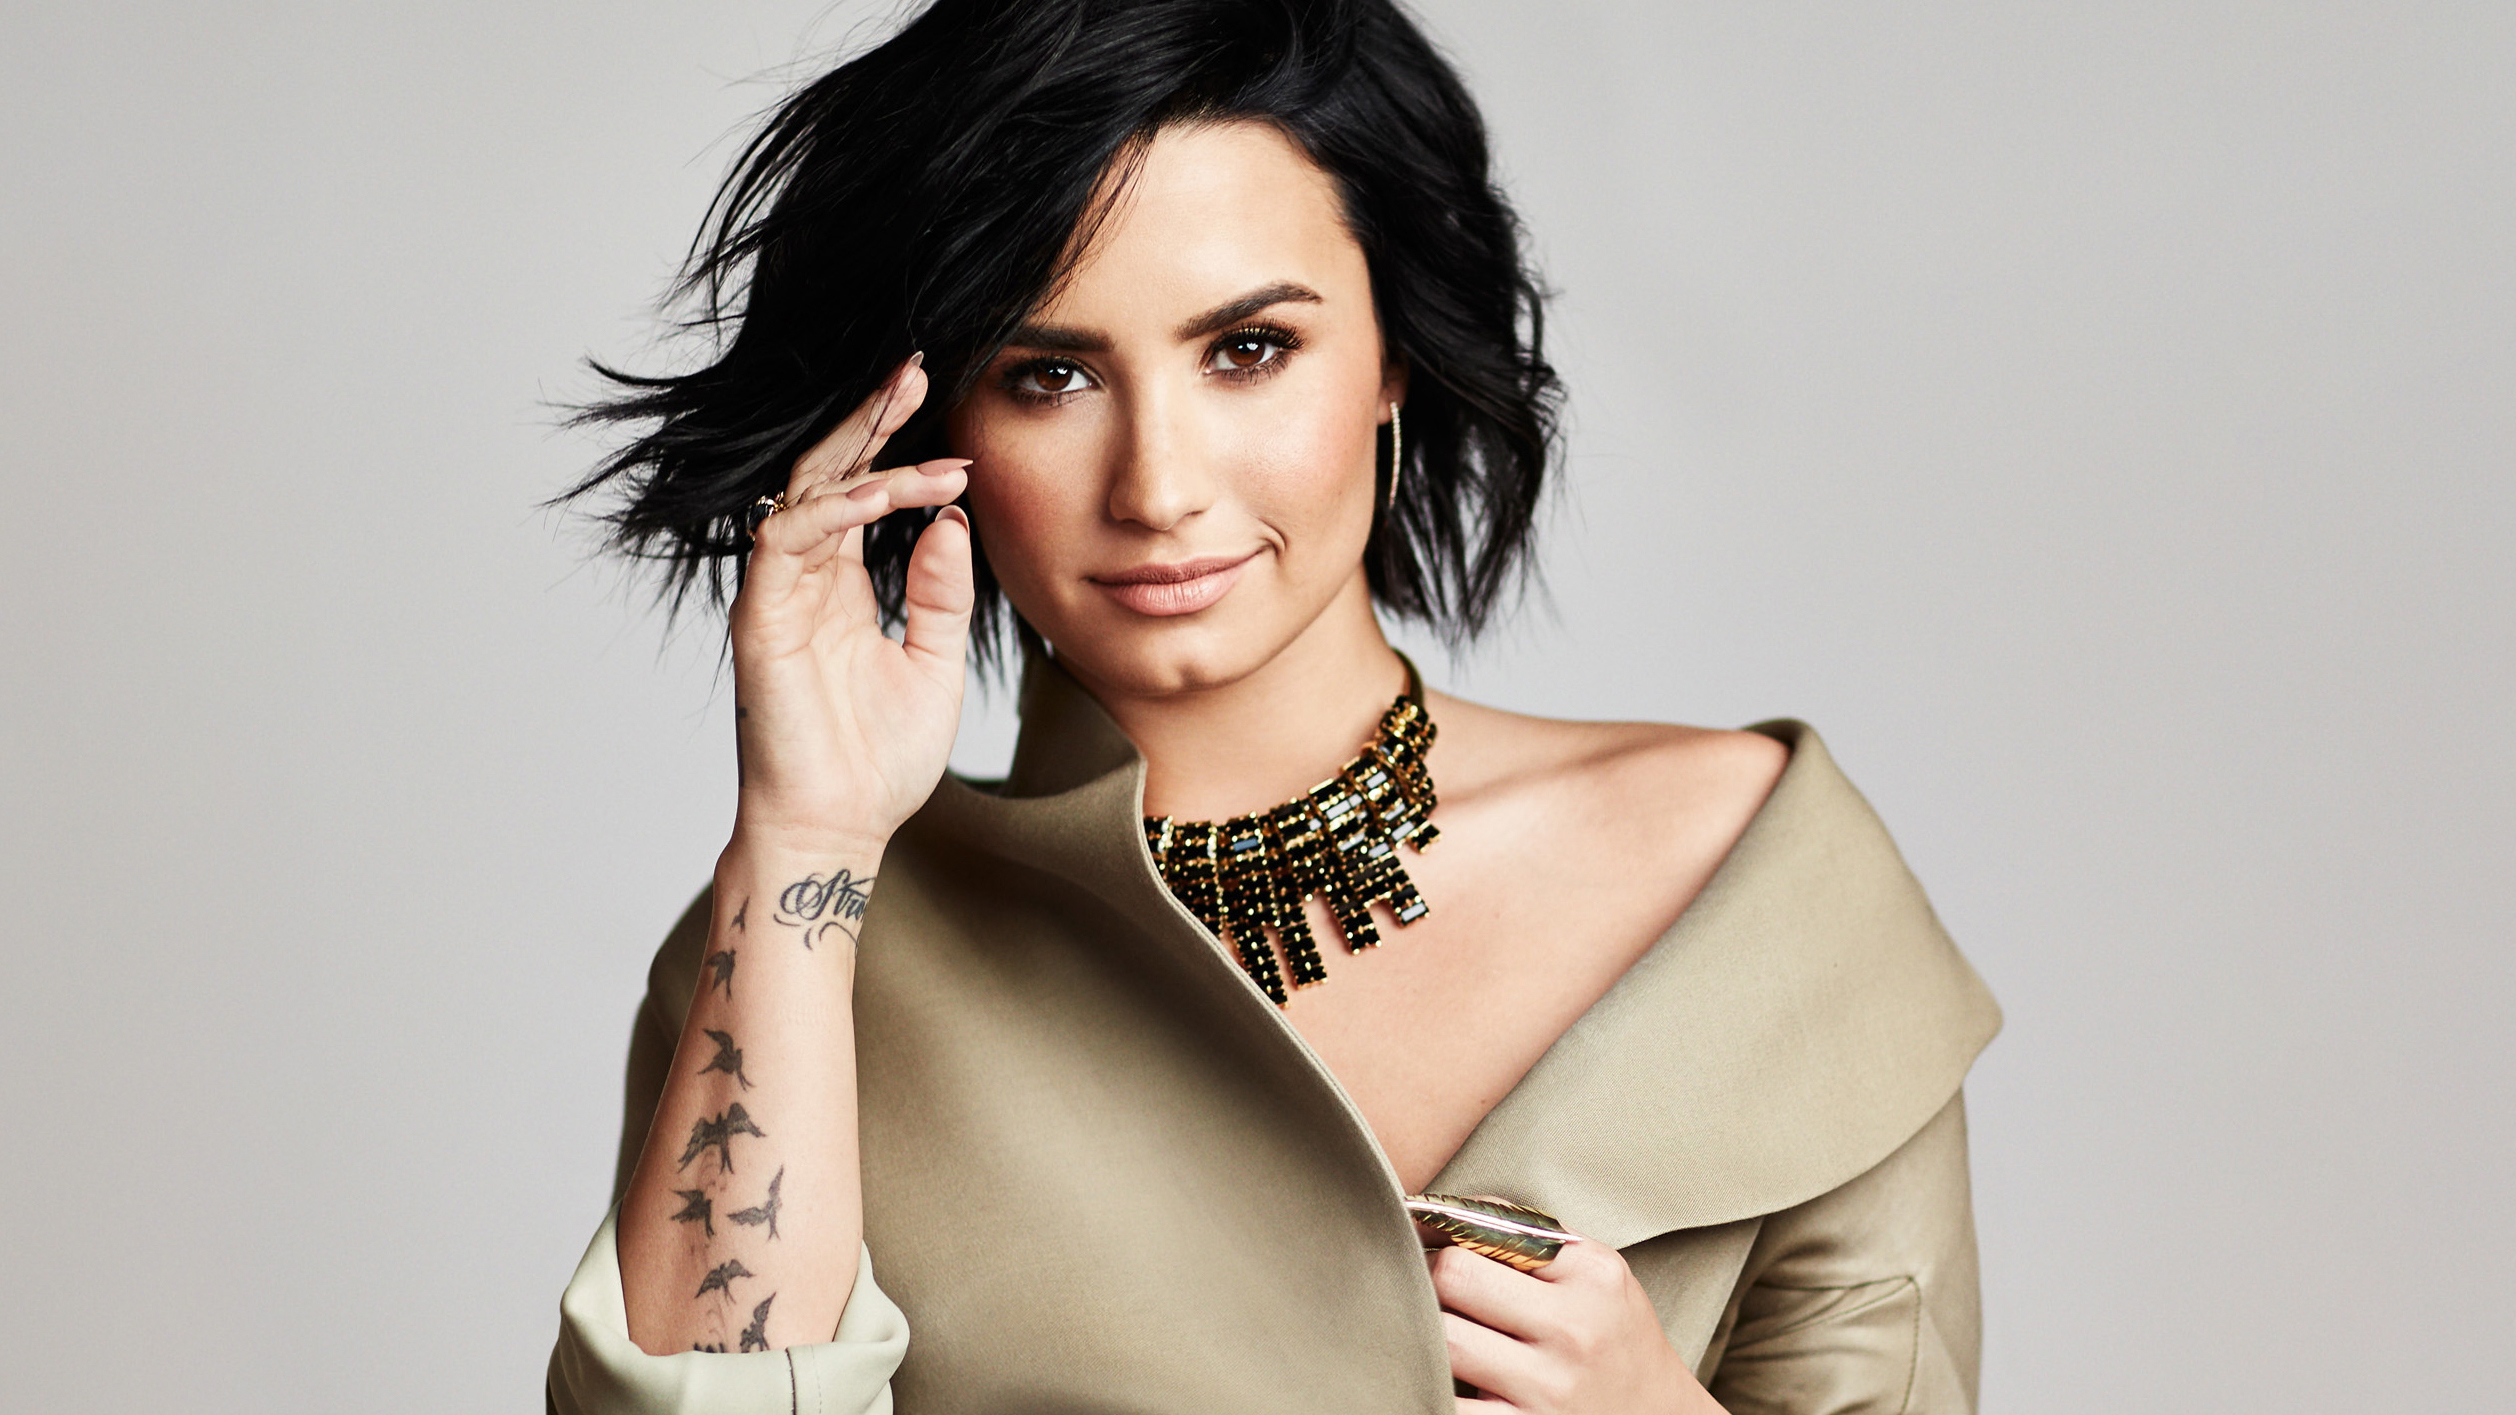 Demi Lovato Devonne >> 2016 Demi Lovato, HD Celebrities, 4k Wallpapers, Images, Backgrounds, Photos and Pictures